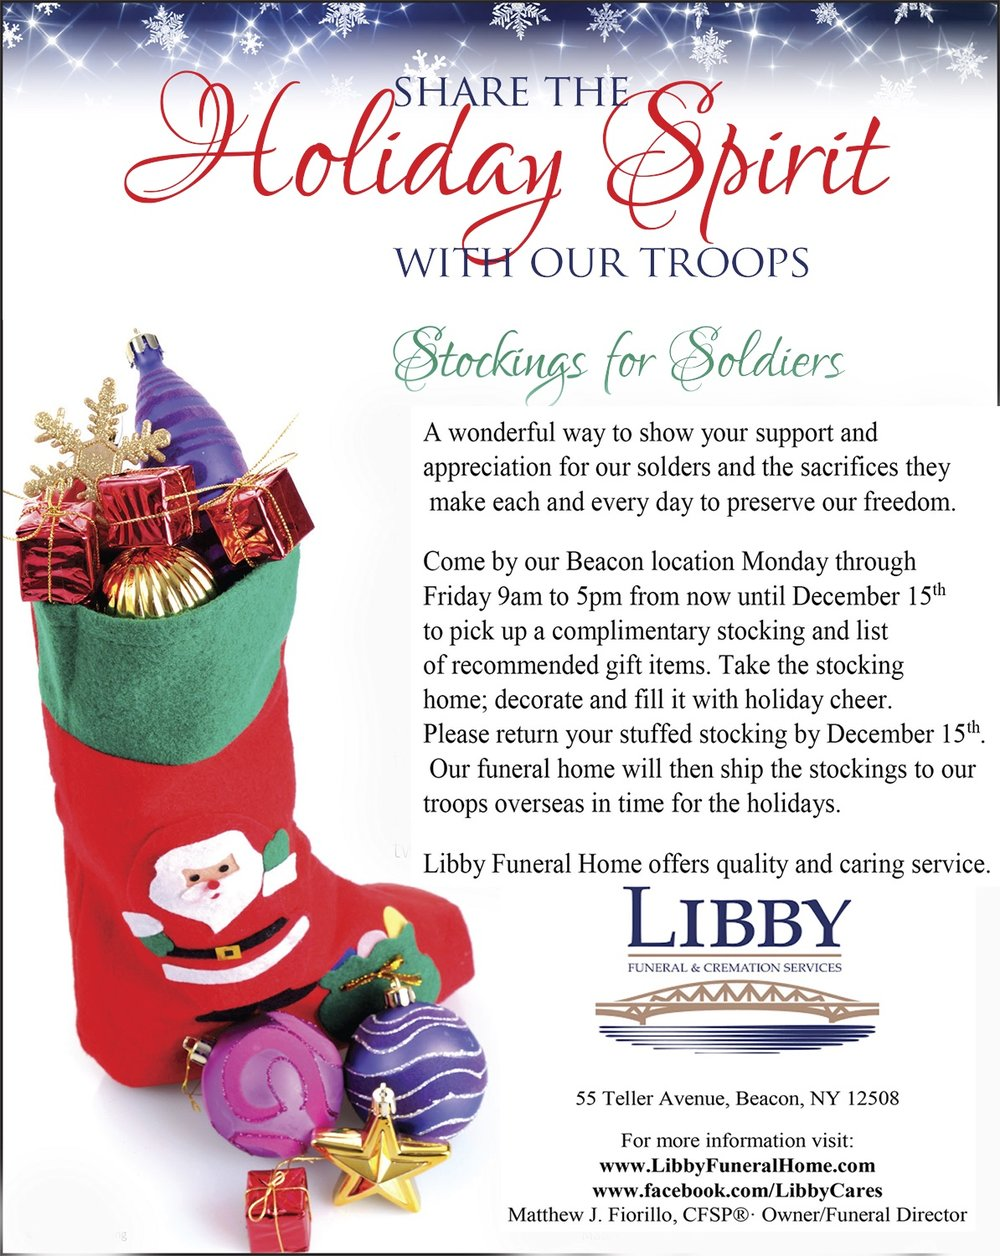 Stockings for Soldiers - Stuff a Stocking For a Soldier, and Libby ...